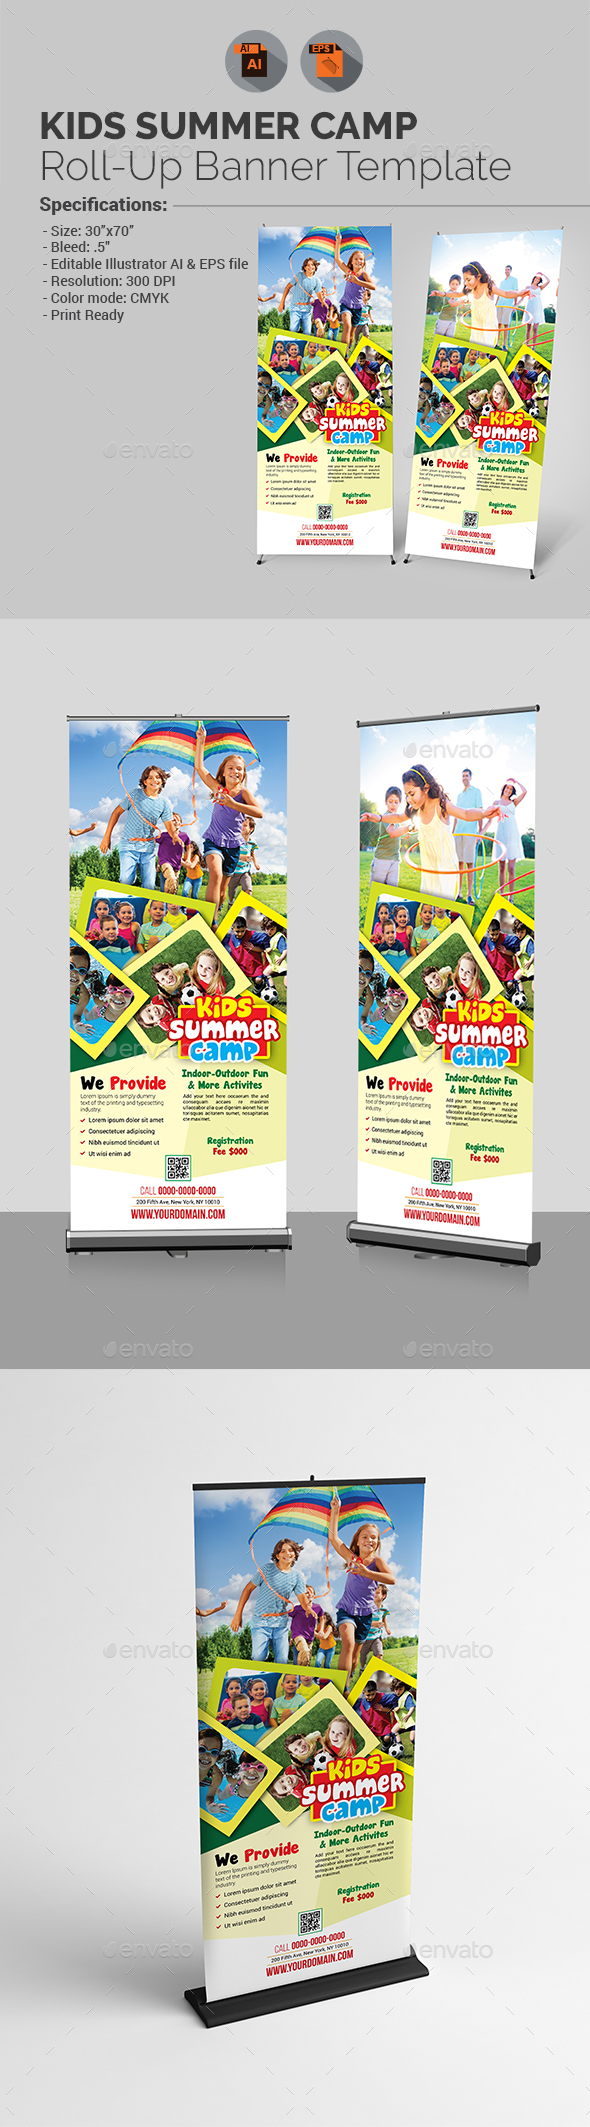 Kids Summer Camp Roll-up Banner Template